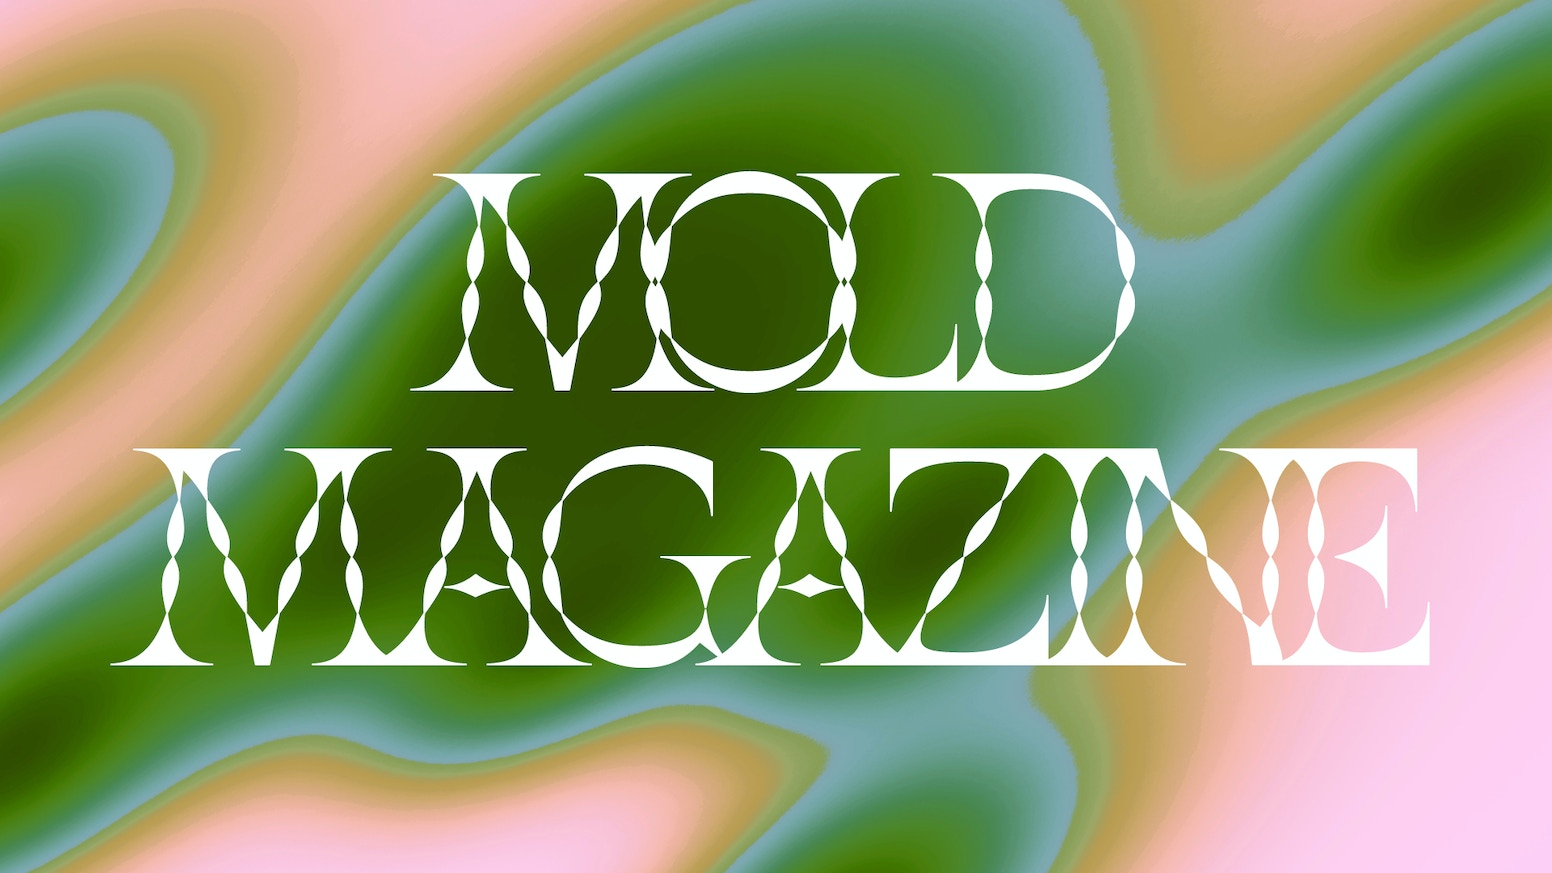 MOLD Magazine explores how design can help feed a hungry planet.